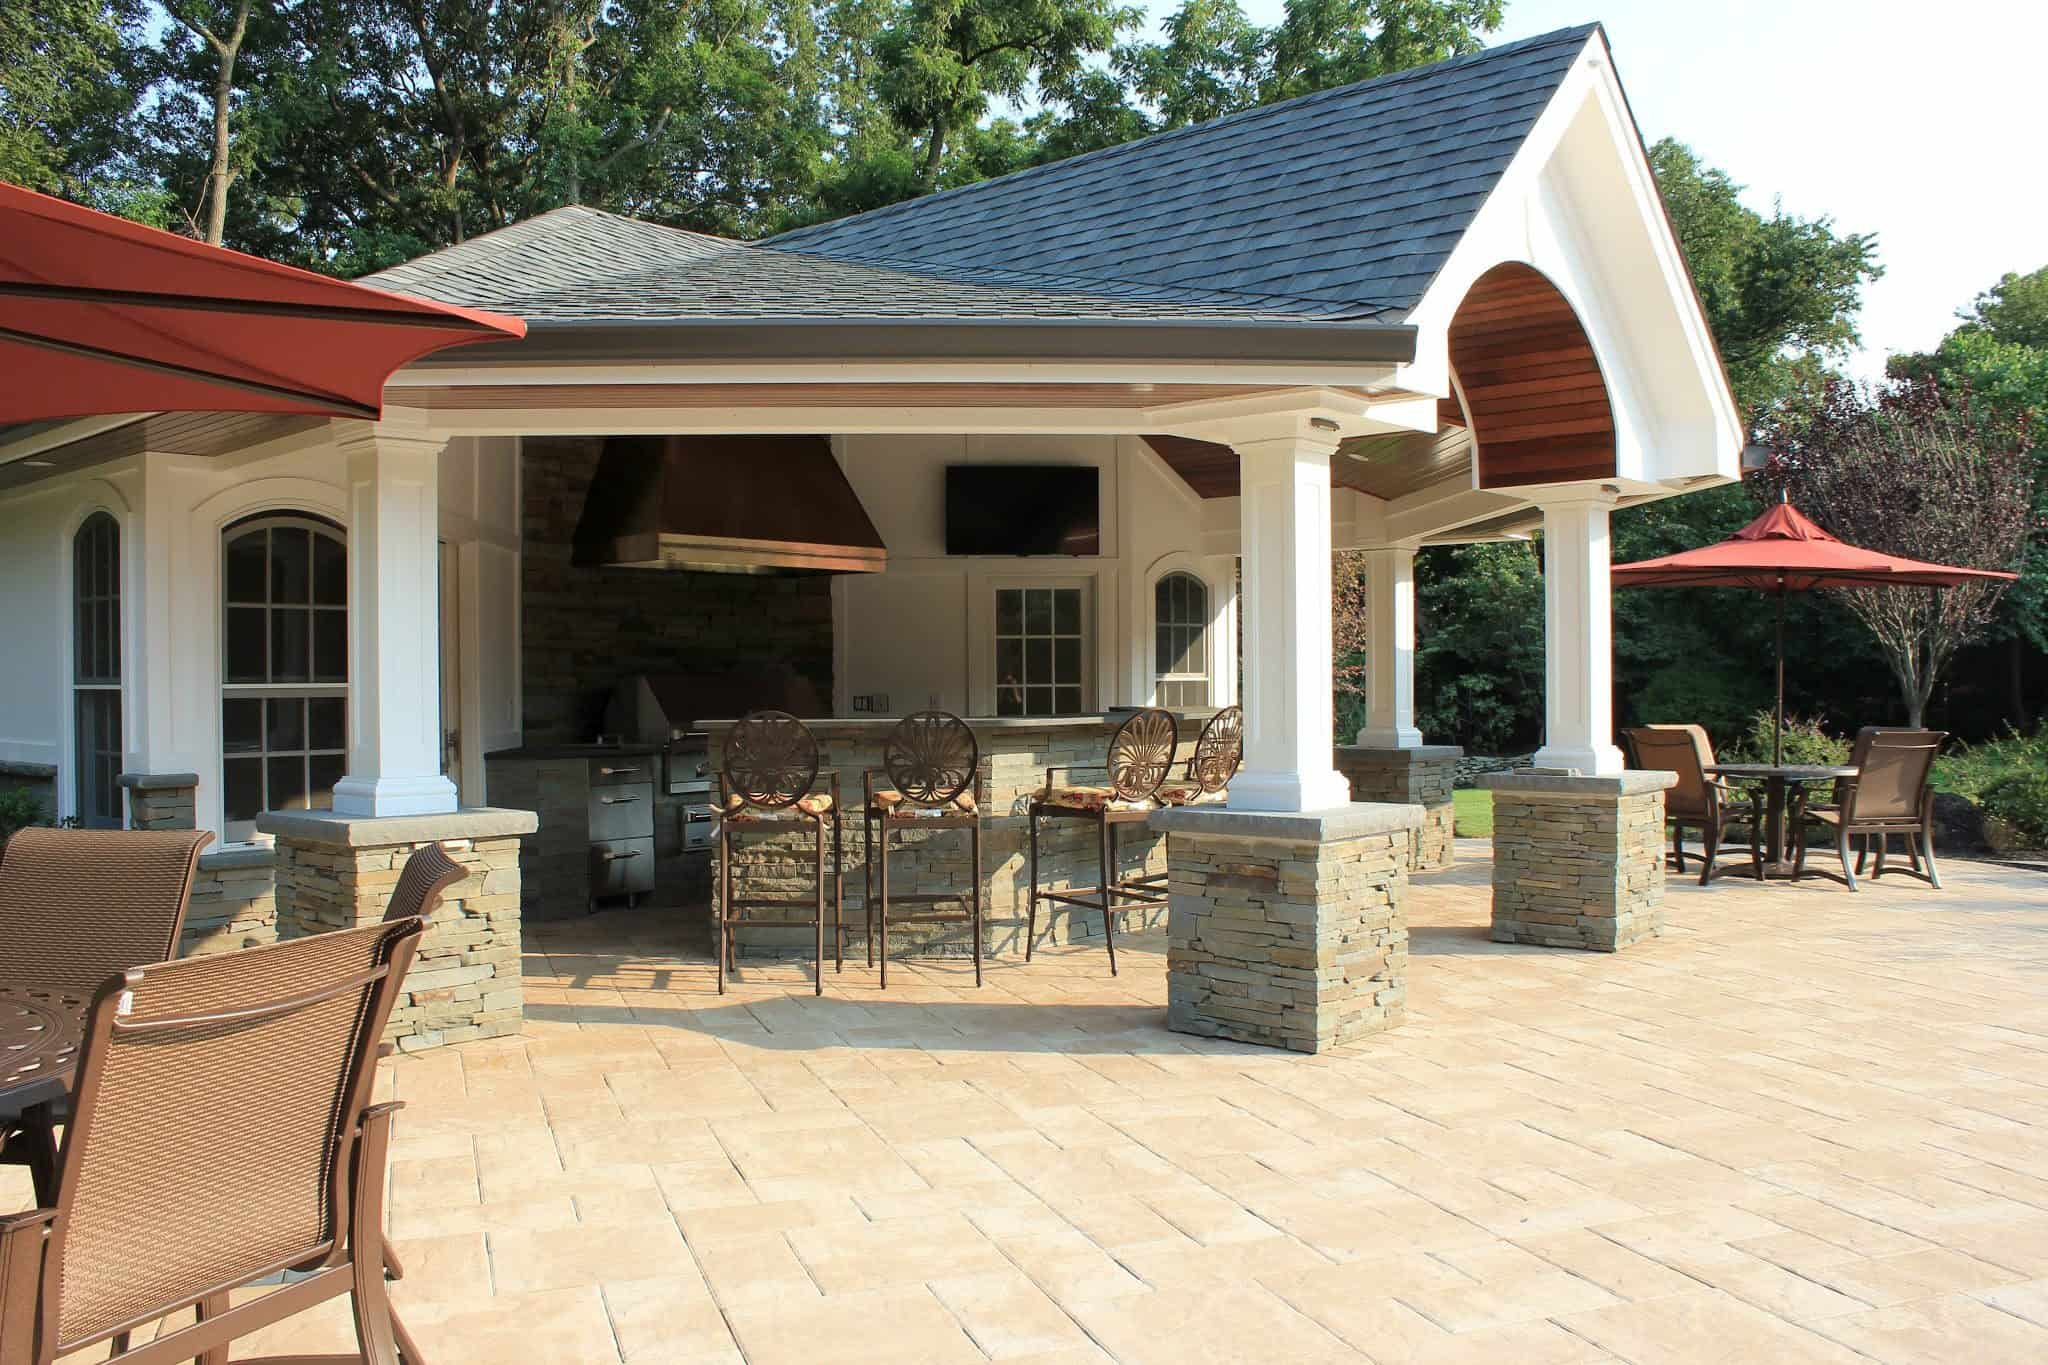 Outdoor Kitchen With Bar And Roof